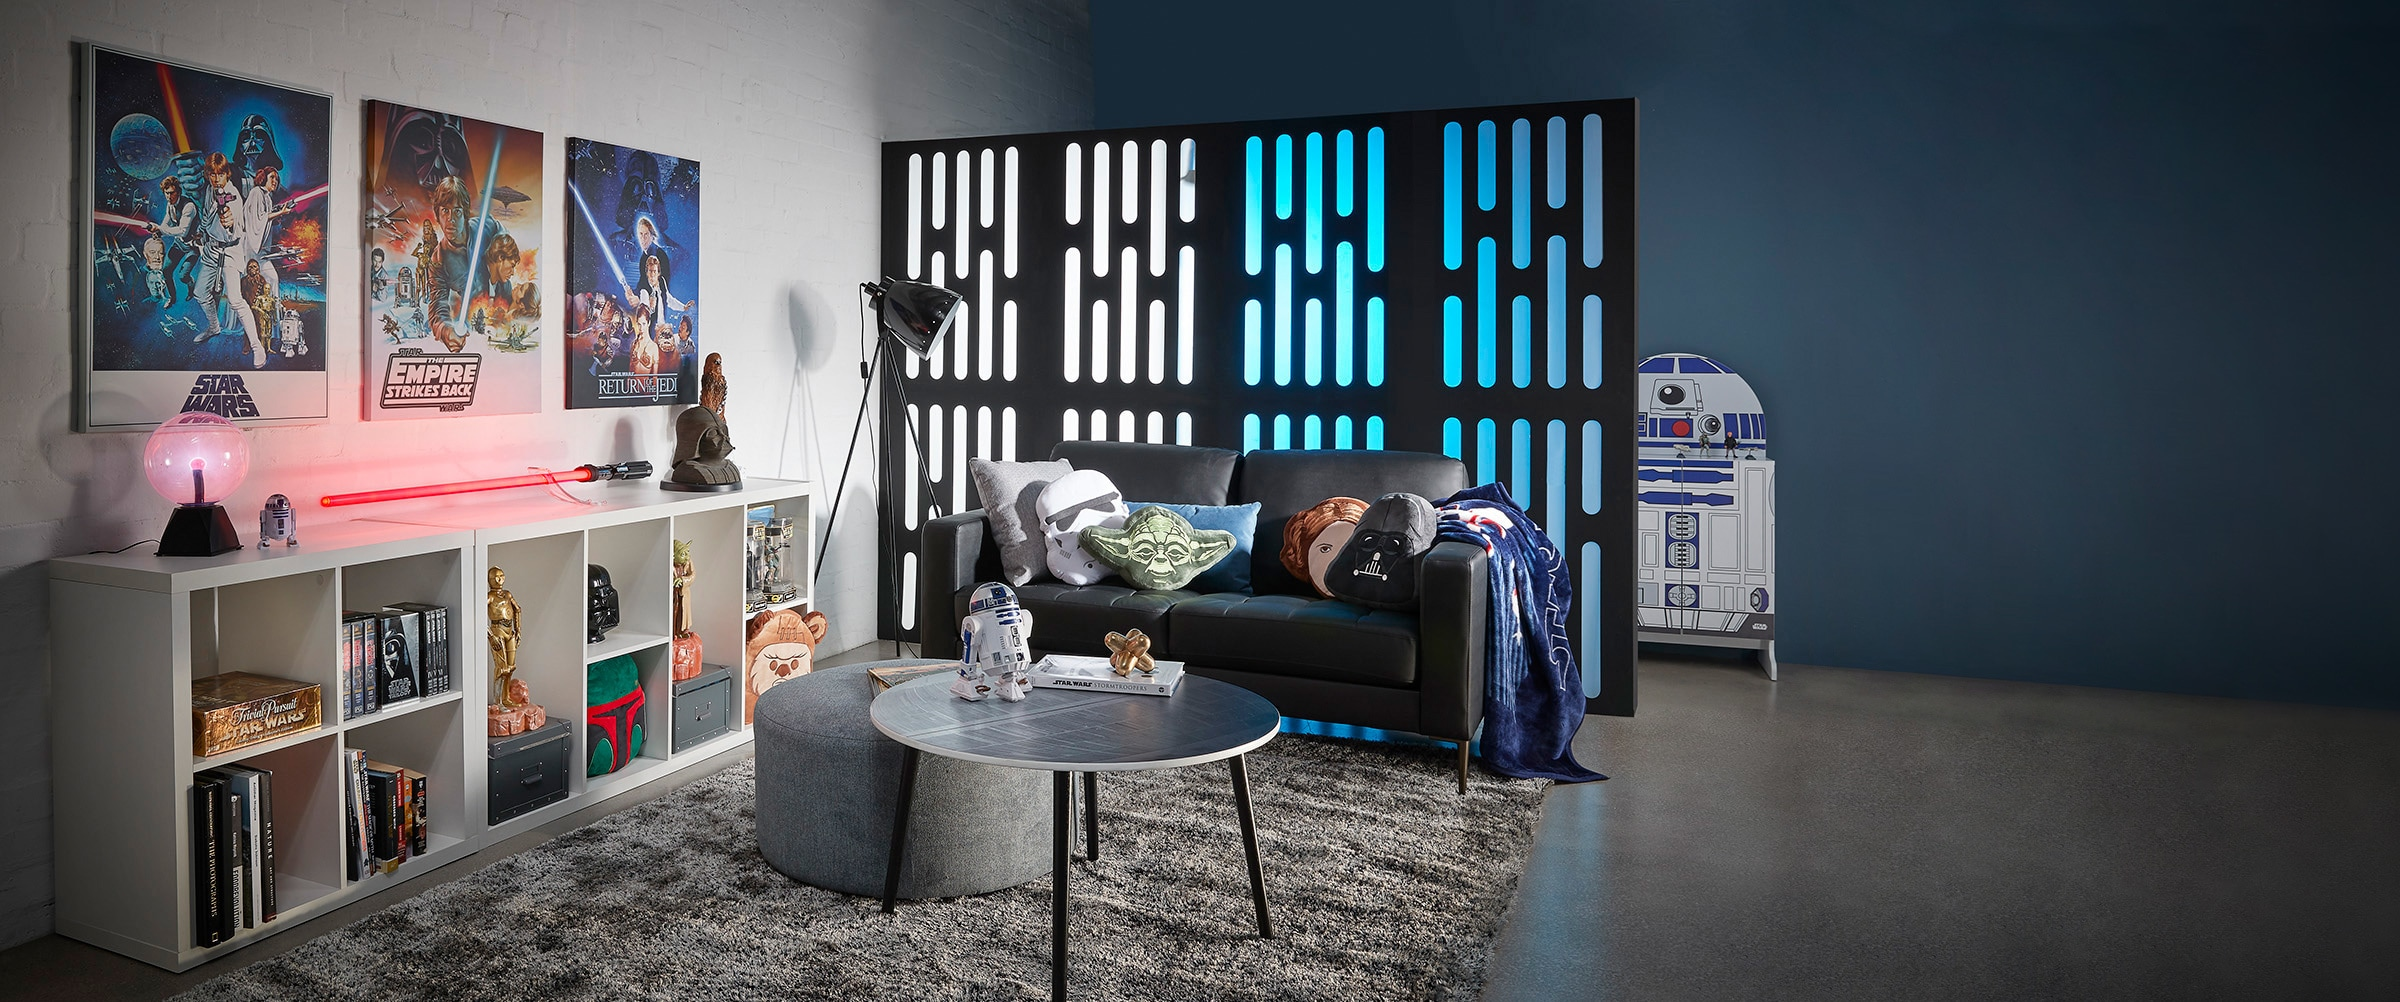 Shop | Shop Star Wars| Hero | Star Wars Fantastic Furniture